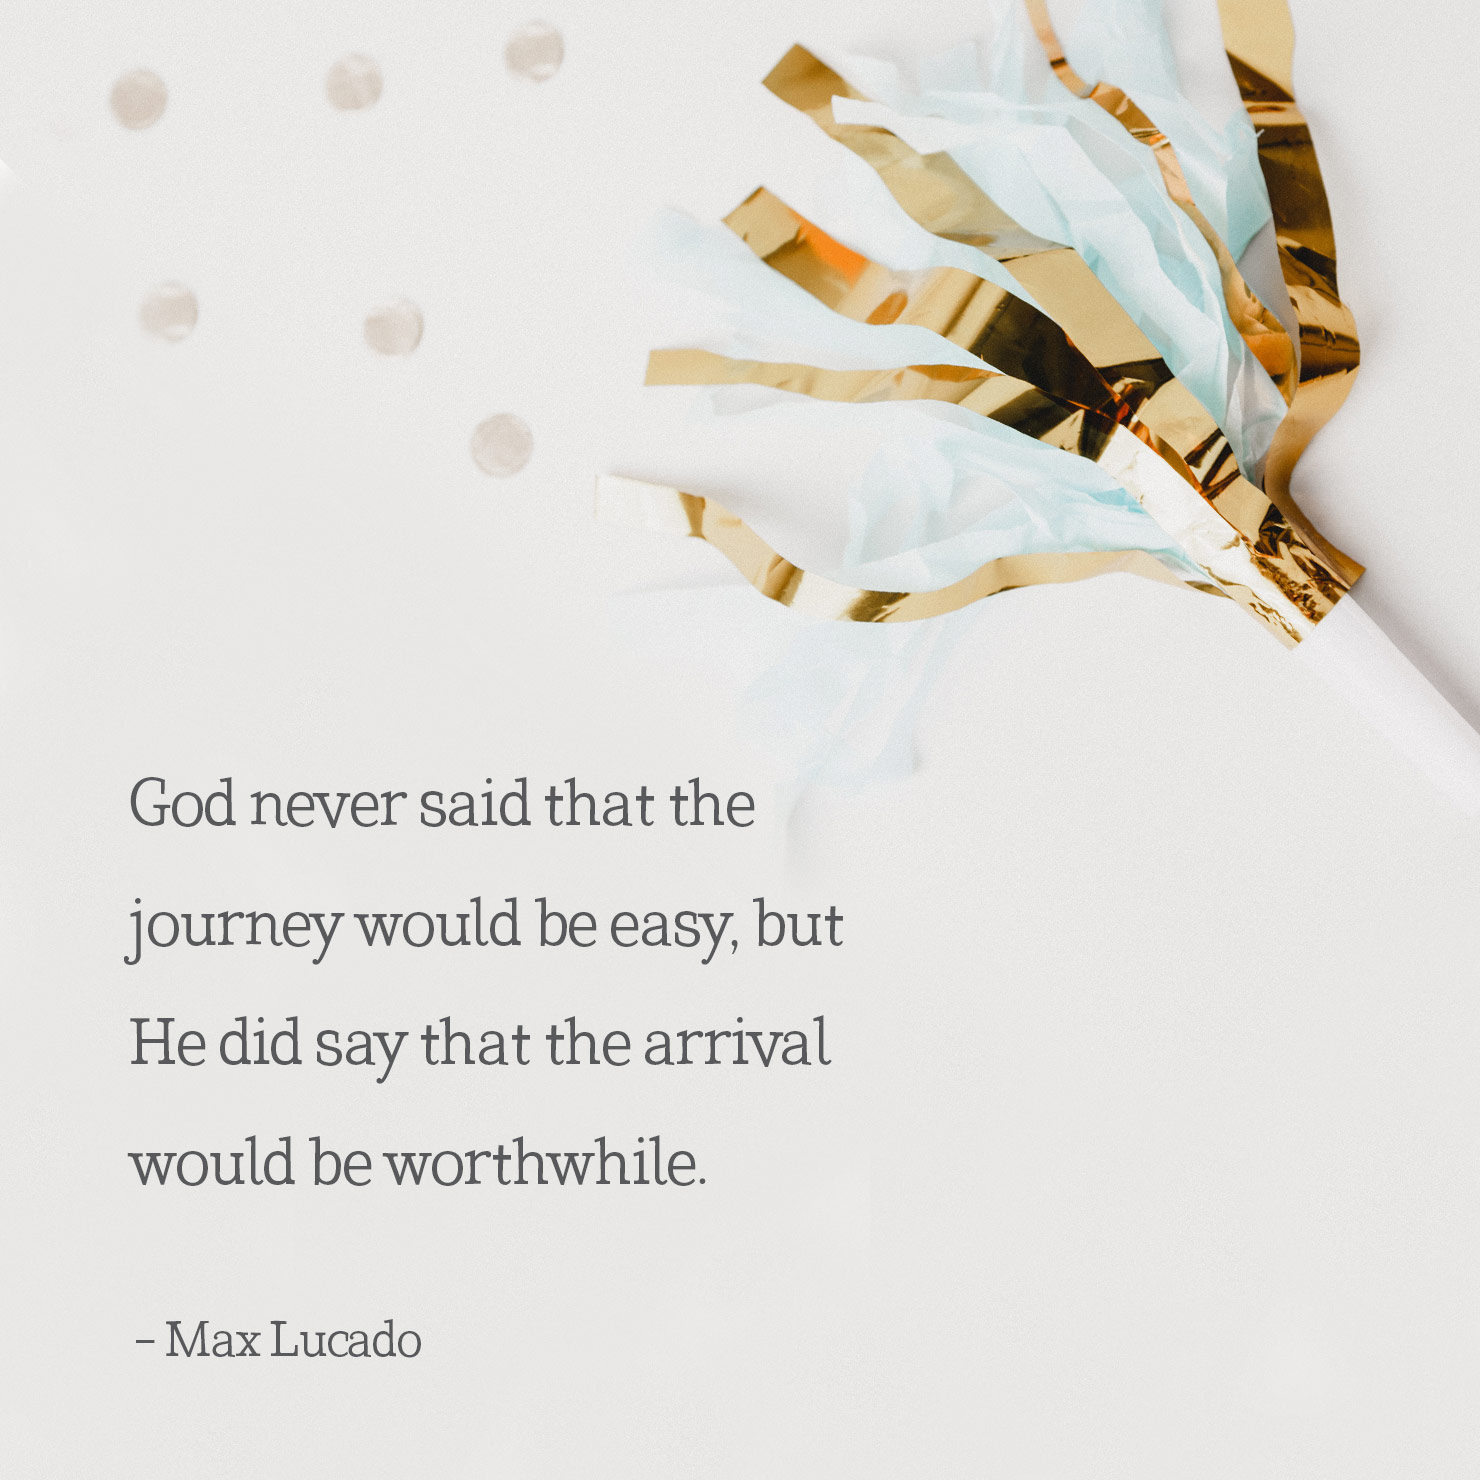 religious graduation quote: God never said that the journey would be easy, but He did say that the arrival would be worthwhile - Max Lucado